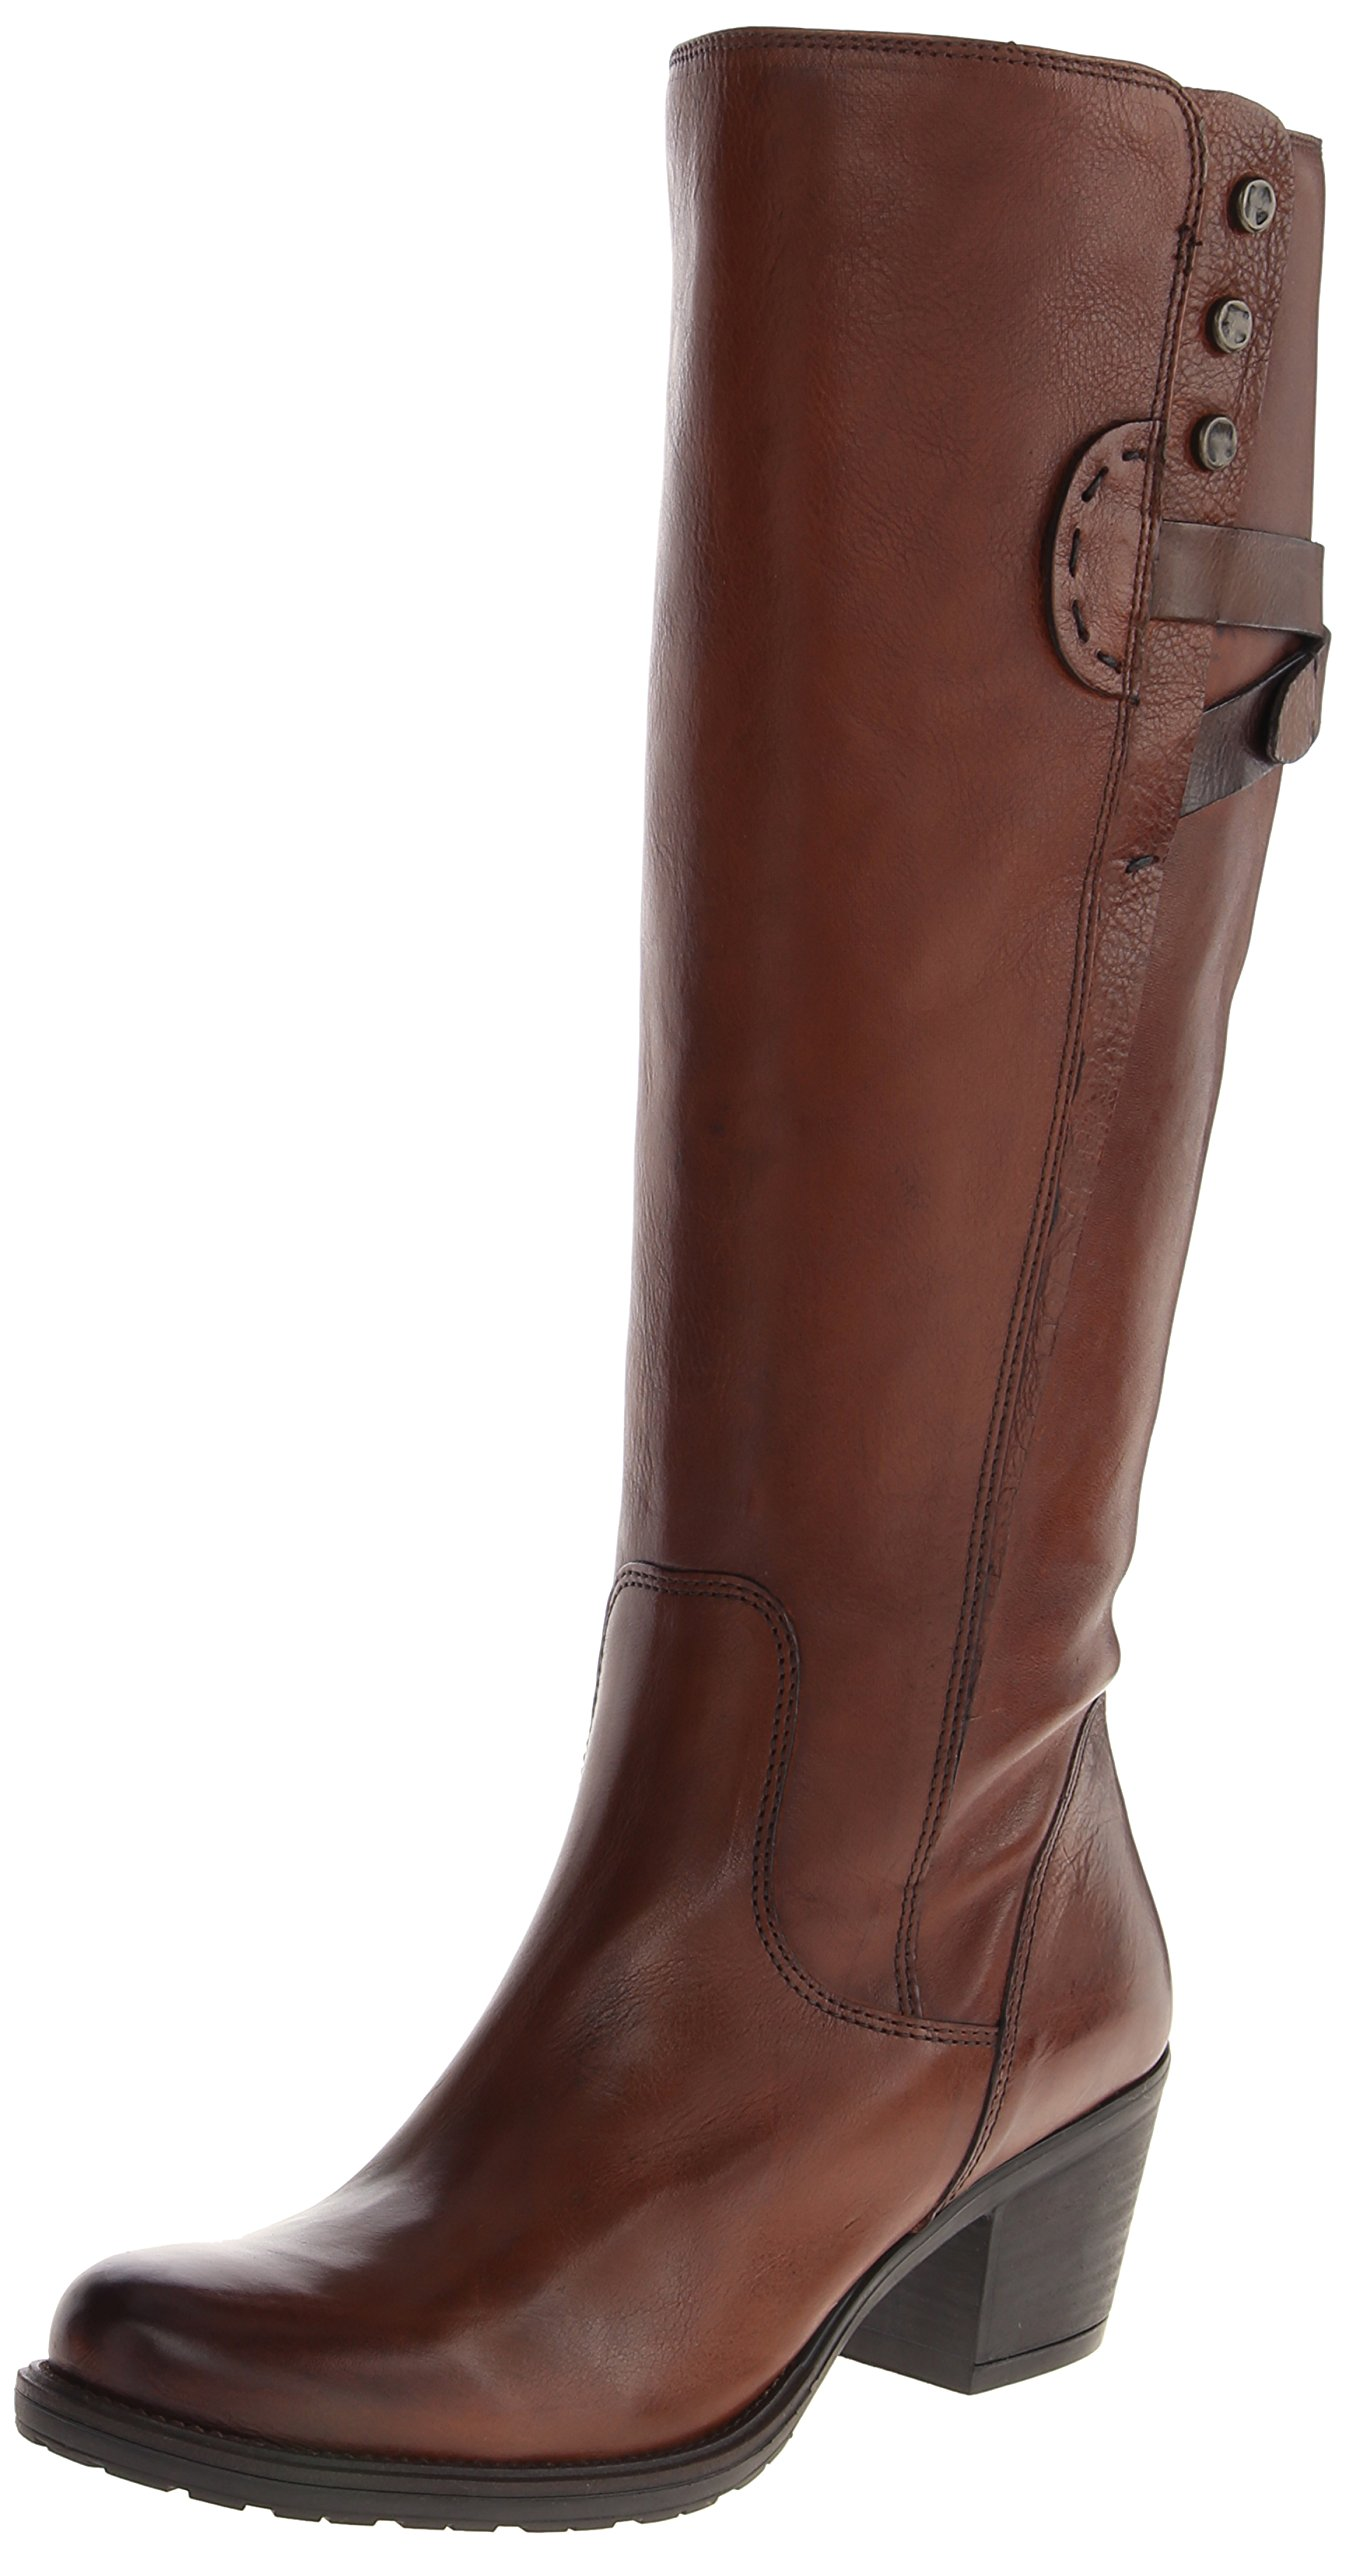 Clarks Women's Maymie Stellar Riding Boot,Cognac Leather,7.5 M US